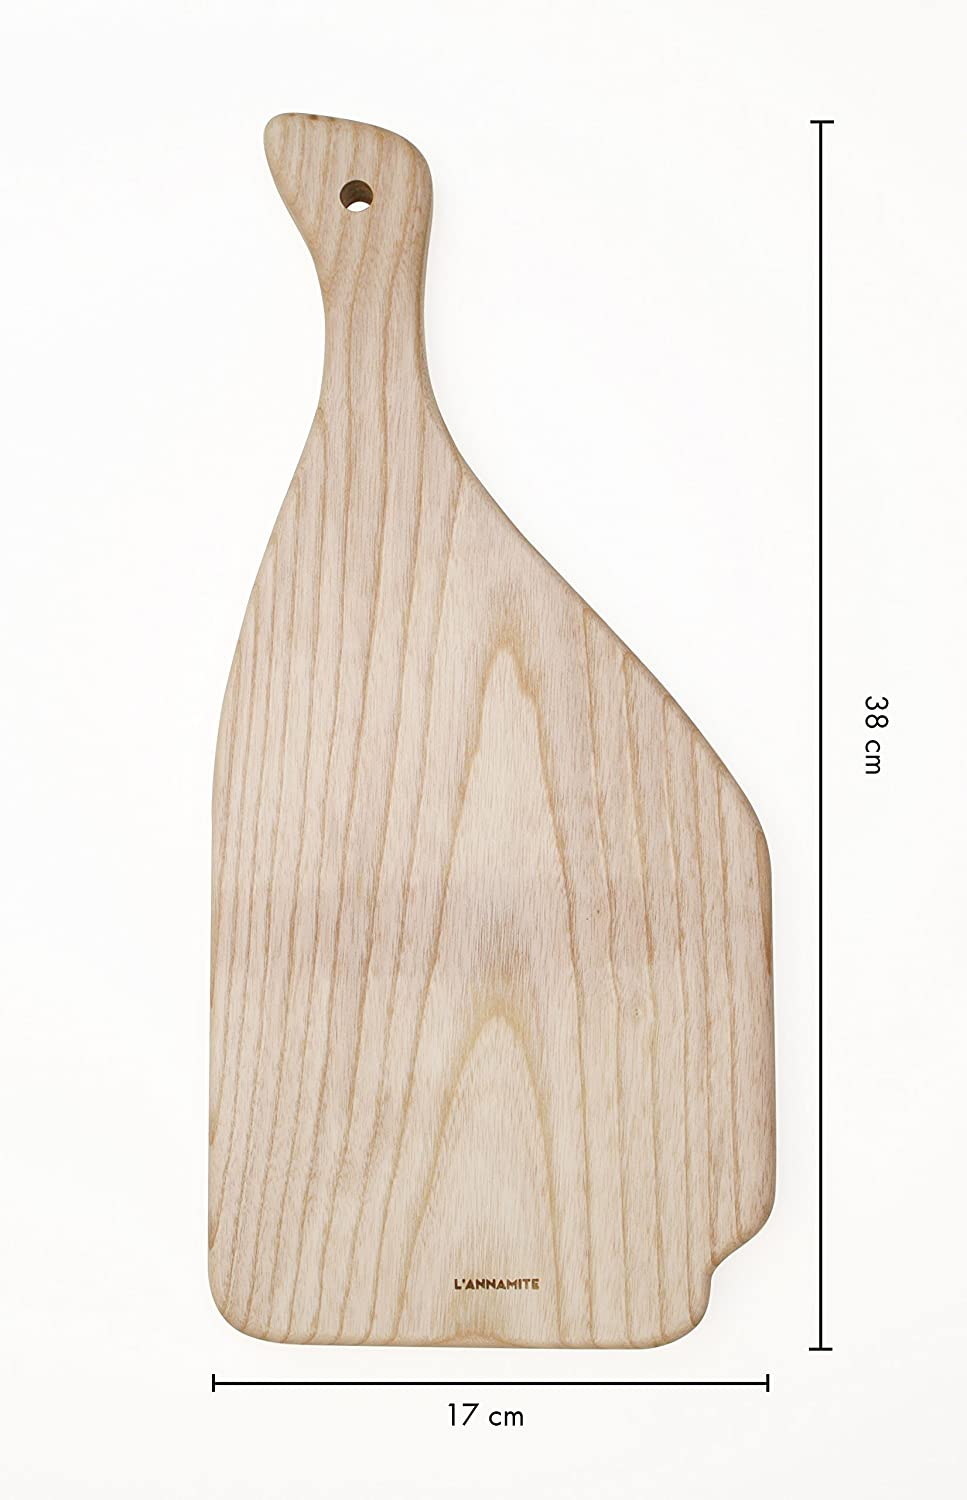 Cutting Board with natural shapes